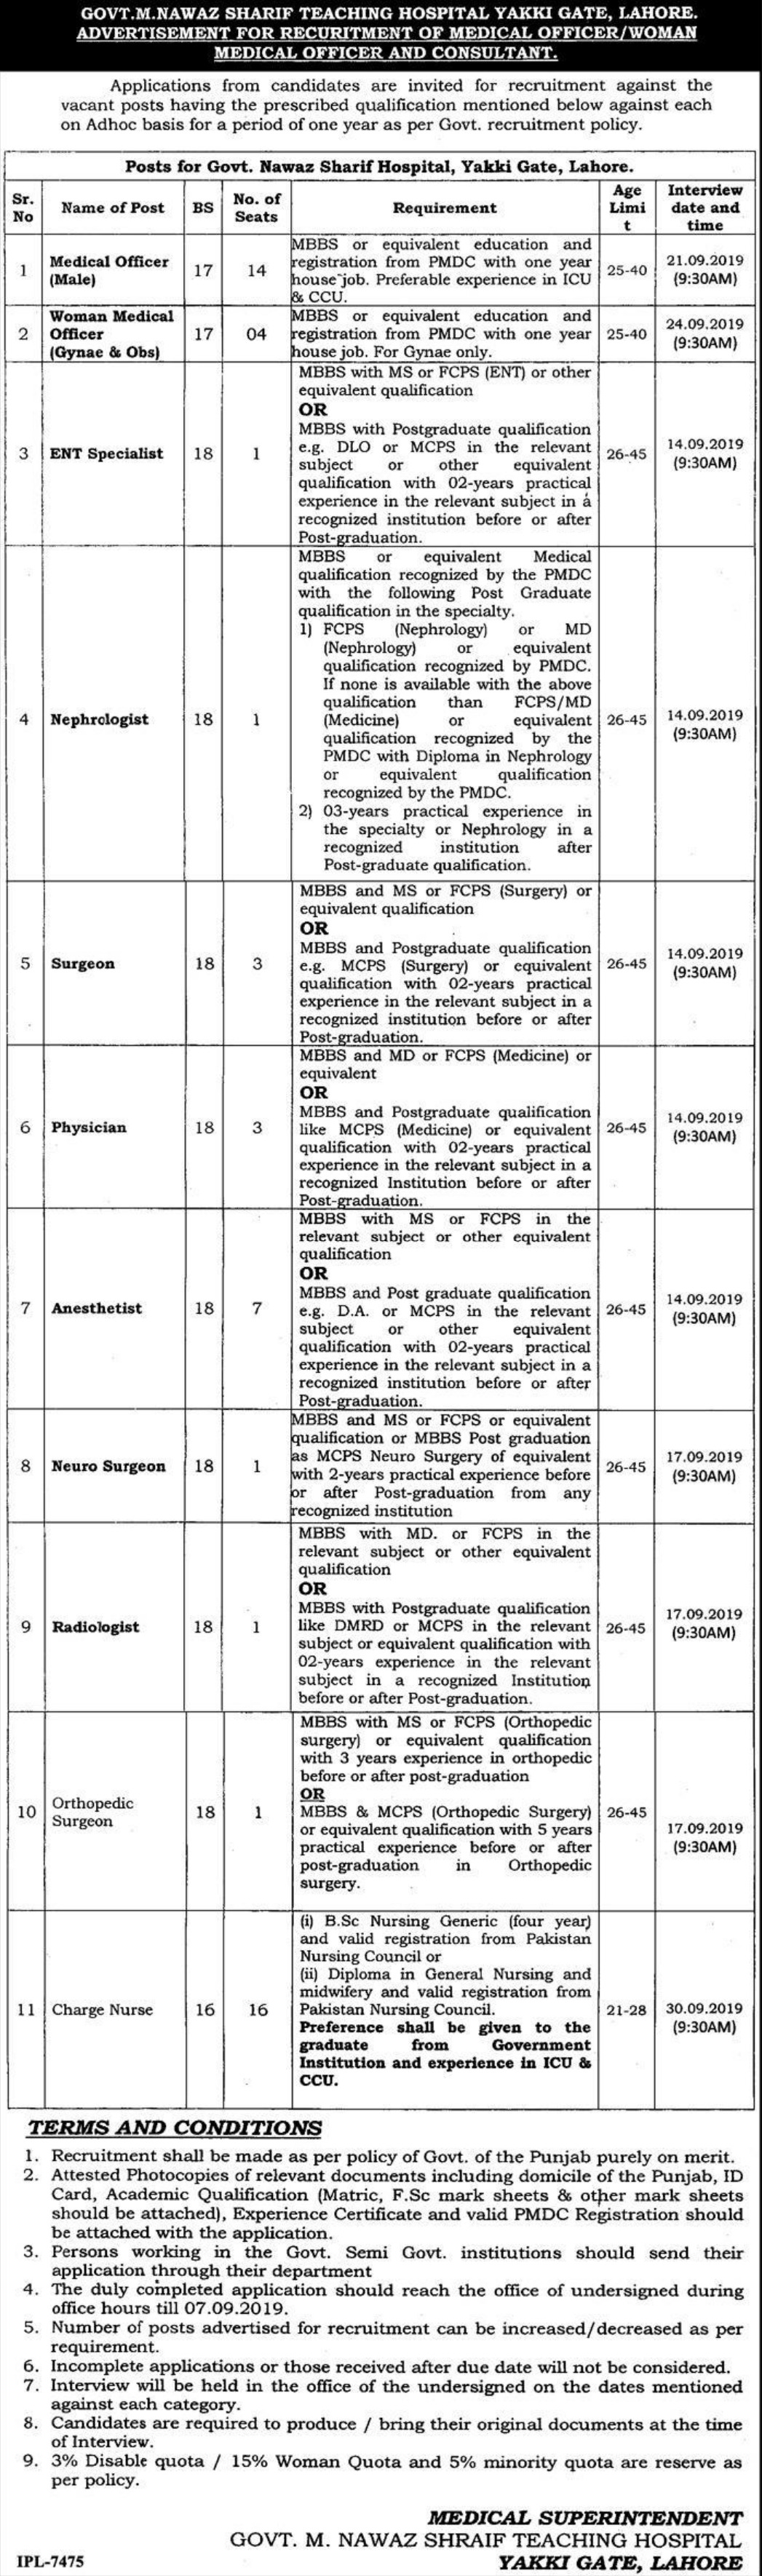 Govt. M. Nawaz Sharif Teaching Hospital Yakki Gate Lahore Jobs 2019